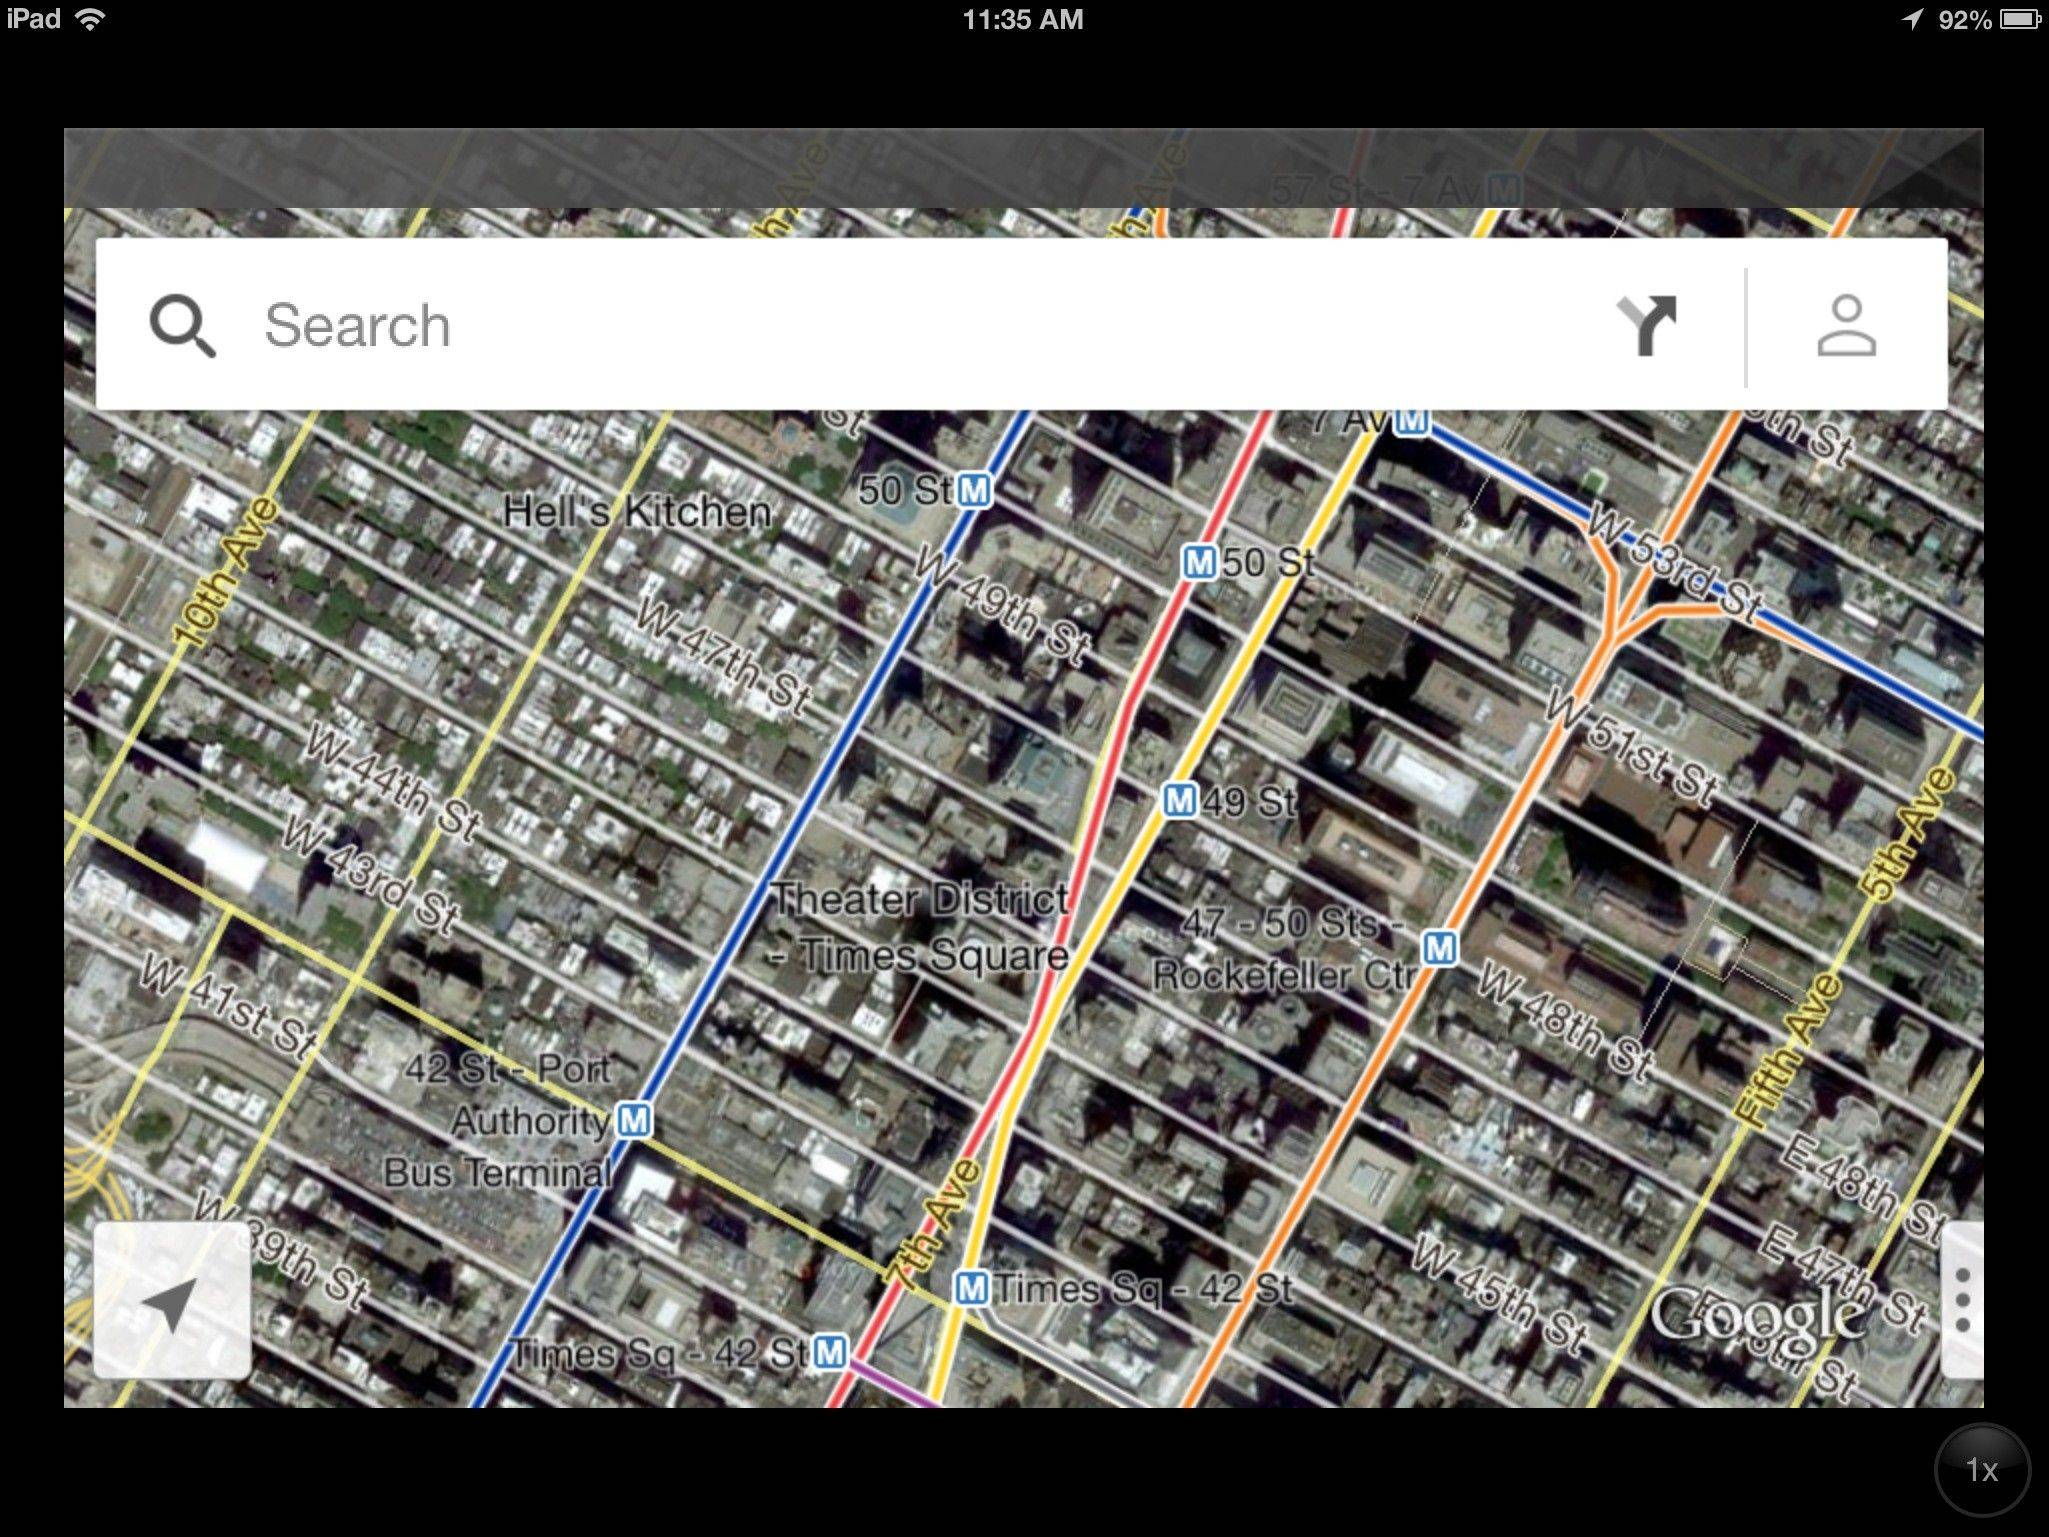 In this screenshot of an iPad, the new Google Maps application is demonstrated in New York on Thursday, Dec. 13, 2012. The world's most popular online mapping system returned late Wednesday with the release of the Google Maps iPhone app. The release comes nearly three months after Apple Inc. replaced Google Maps as the device's built-in navigation system and inserted its own map software into the latest version of its mobile operating system.